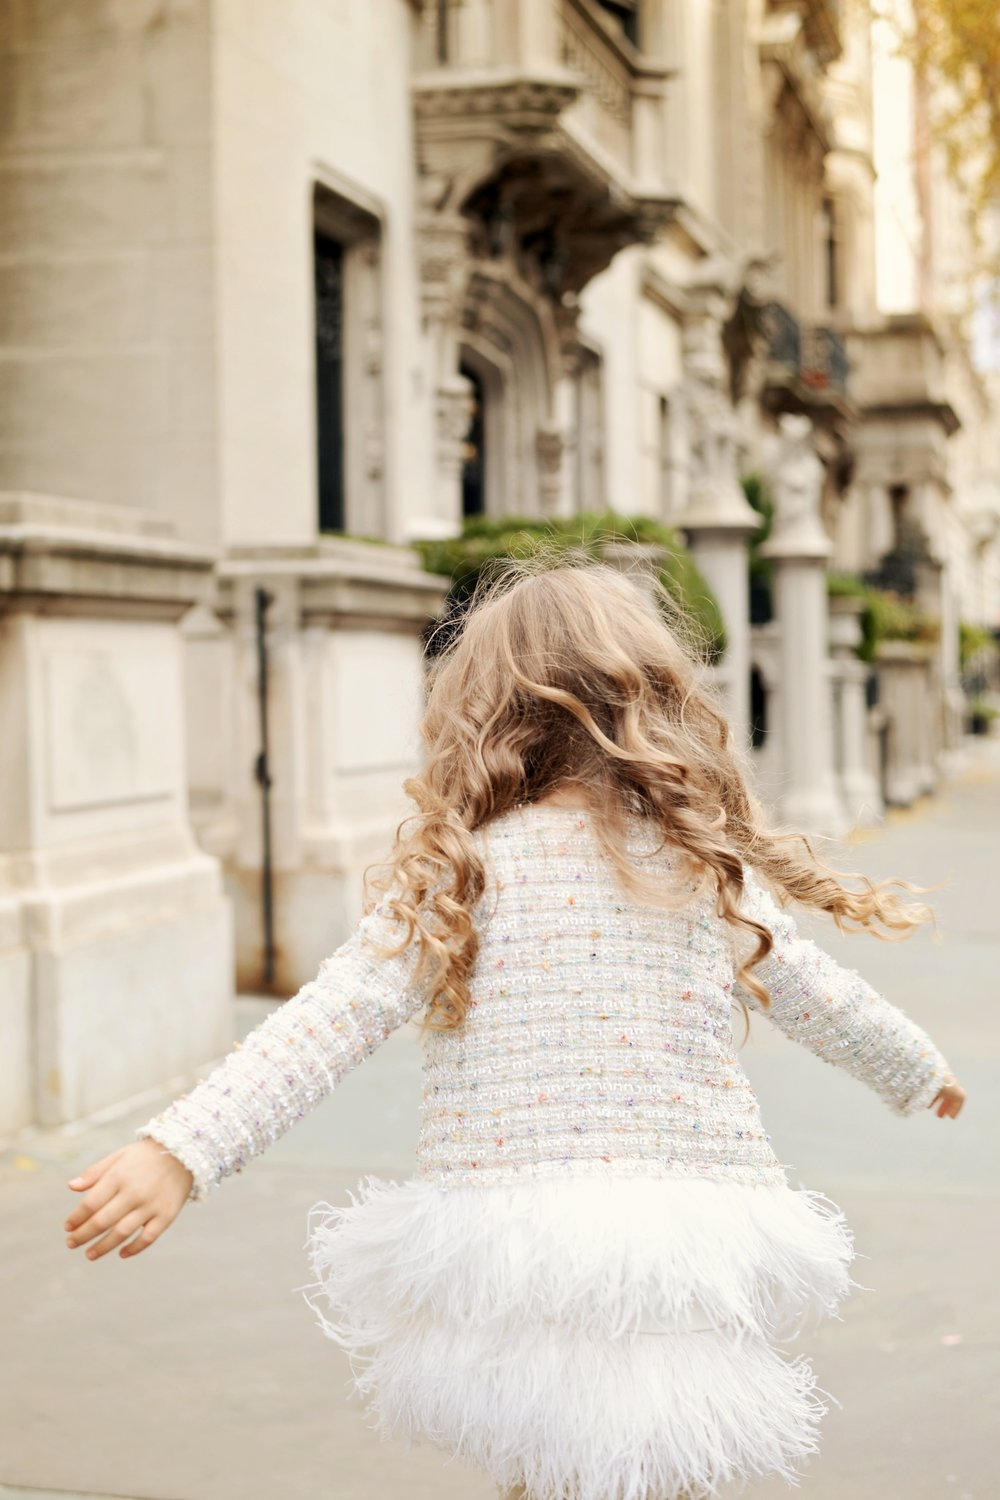 Enfant+Street+Style+by+Gina+Kim+Photography+Mischka+Aoki+dress.jpeg